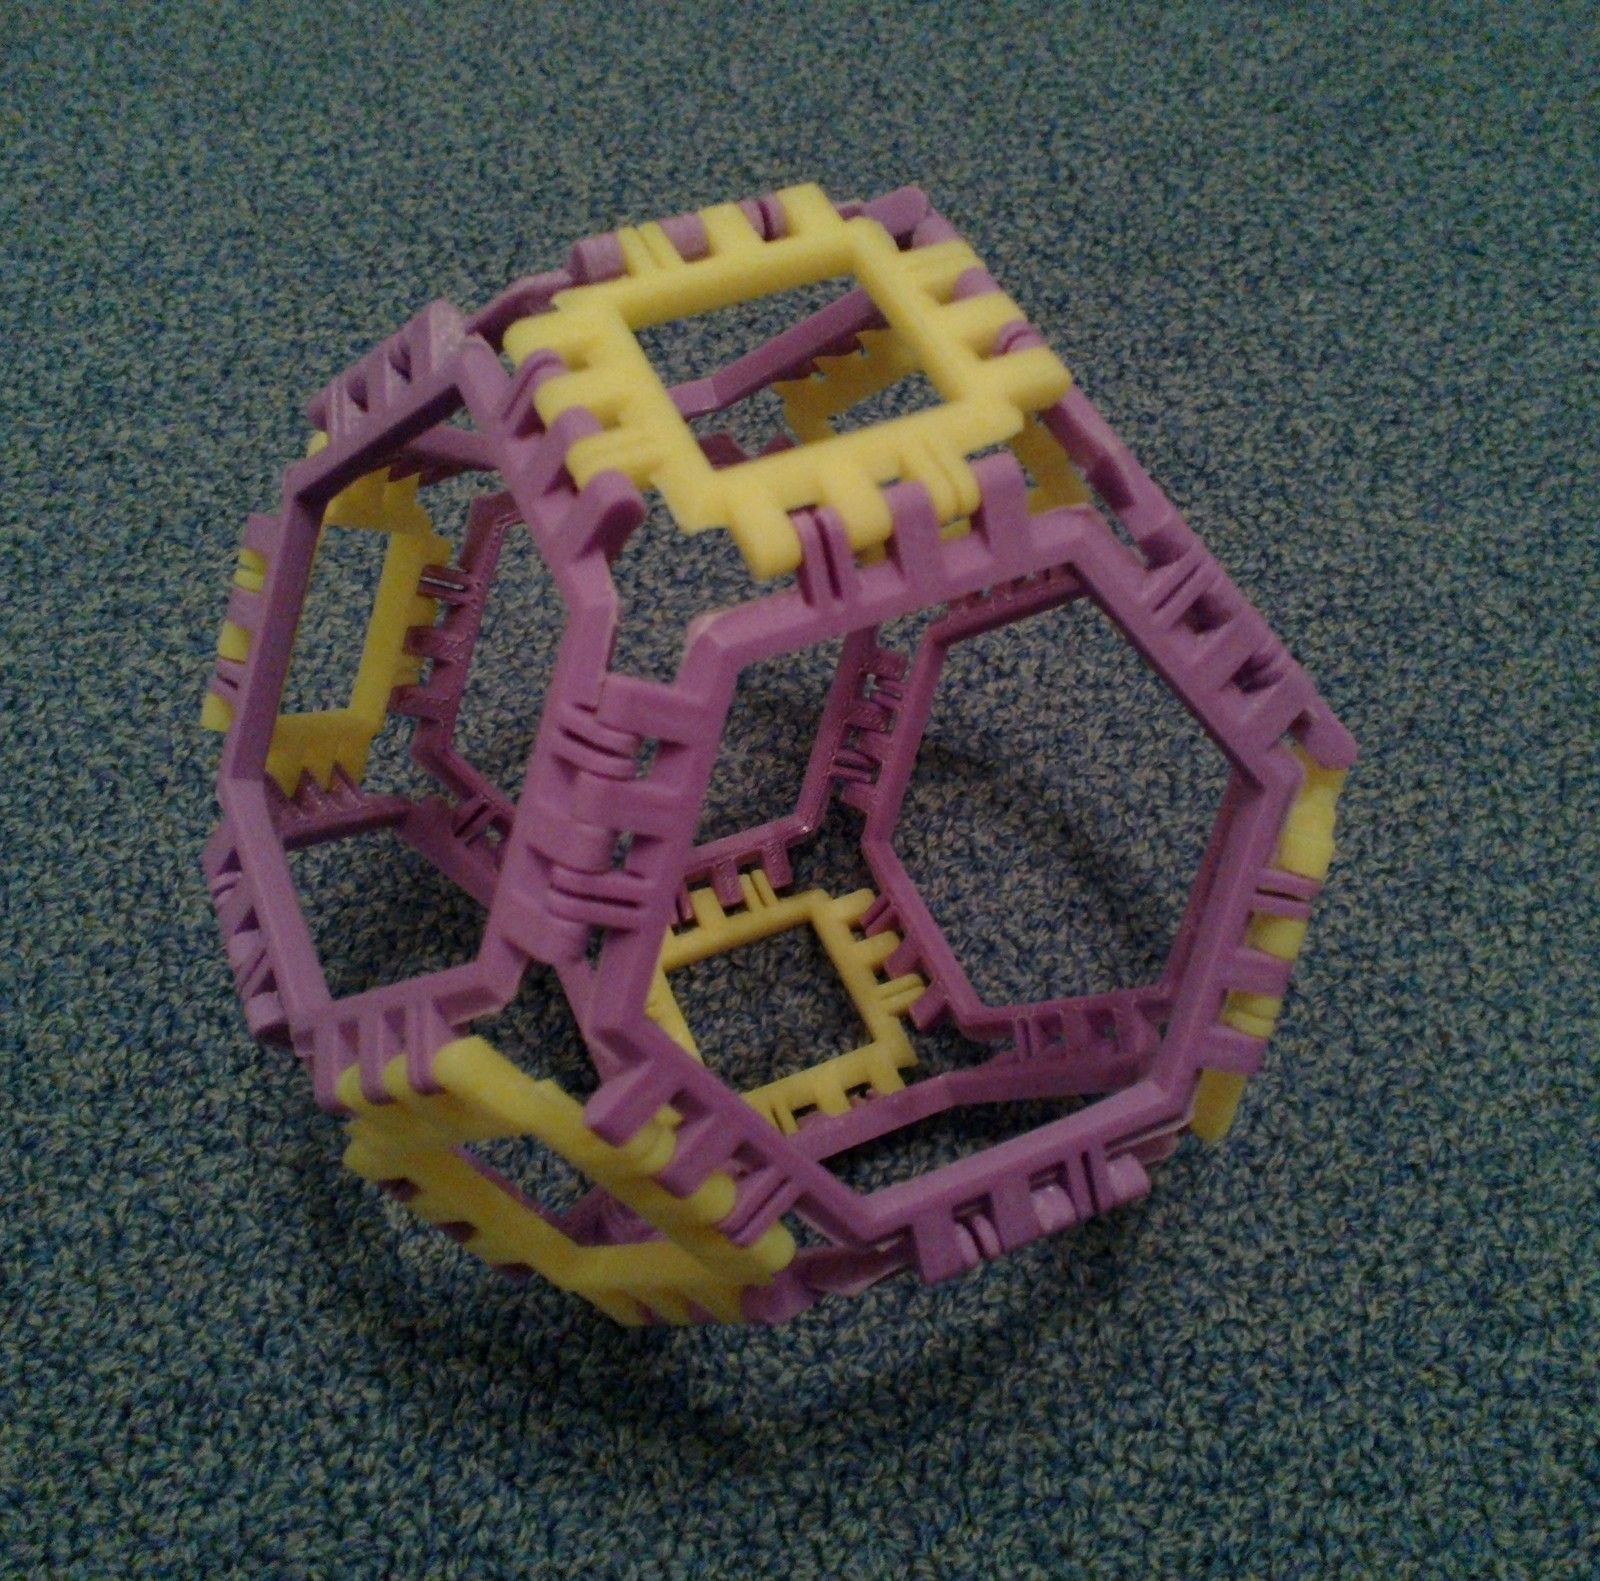 Cover image for article 'Truncated Octahedron'